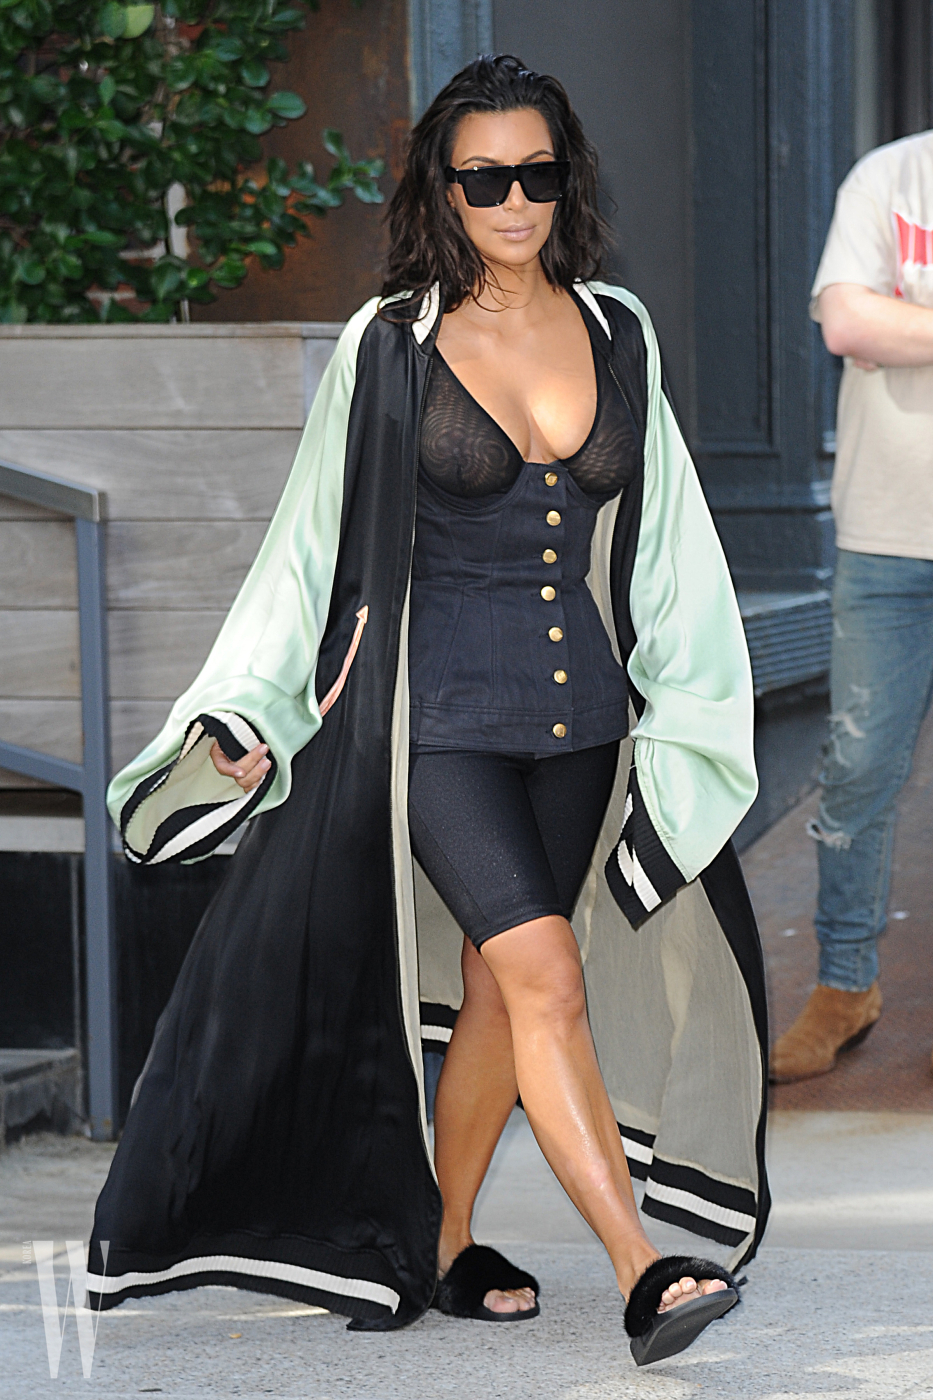 Kim Kardashian West seen leaving a building wearing a see-through bustier corset showing her cleavage while out with Kanye West in New York City on August 30, 2016.